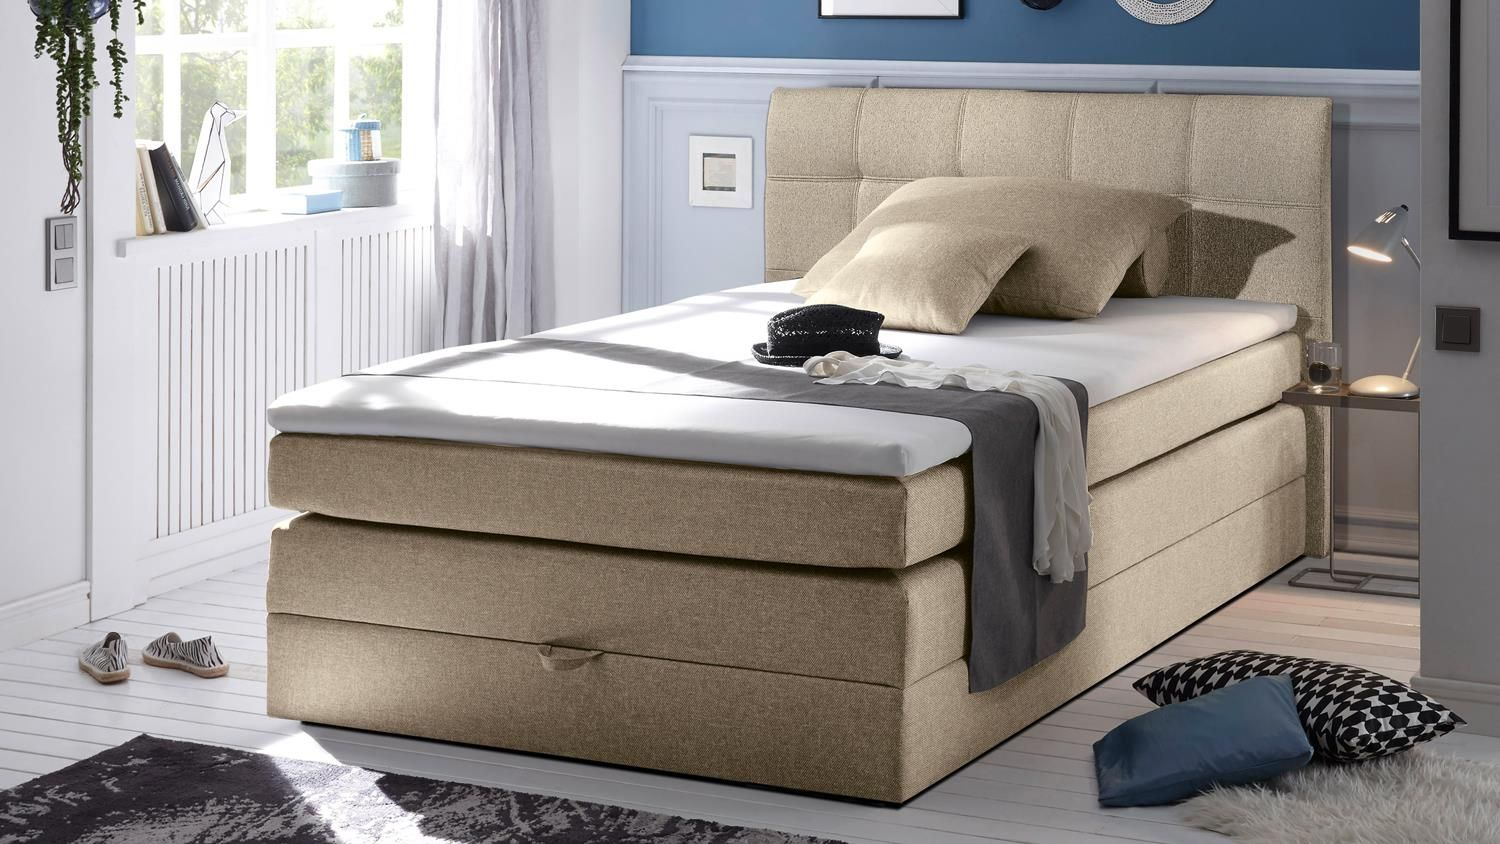 Topper Bett Boxspringbett New Bedford 1 In Stoff Beige Federkern Bettkasten